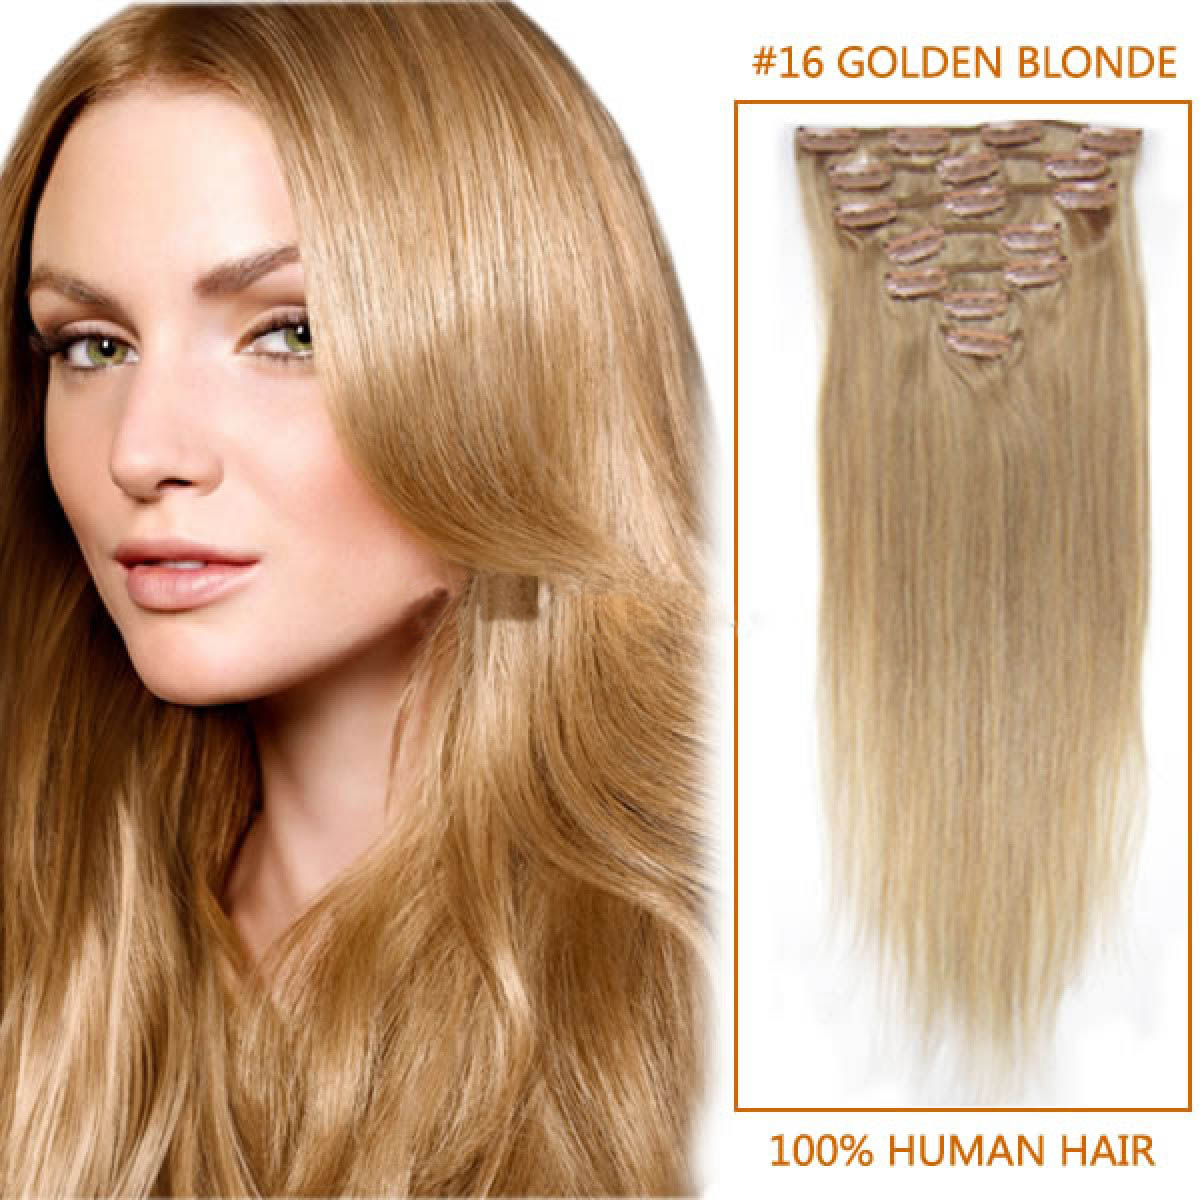 15 Inch 16 Golden Blonde Clip In Human Hair Extensions 9pcs